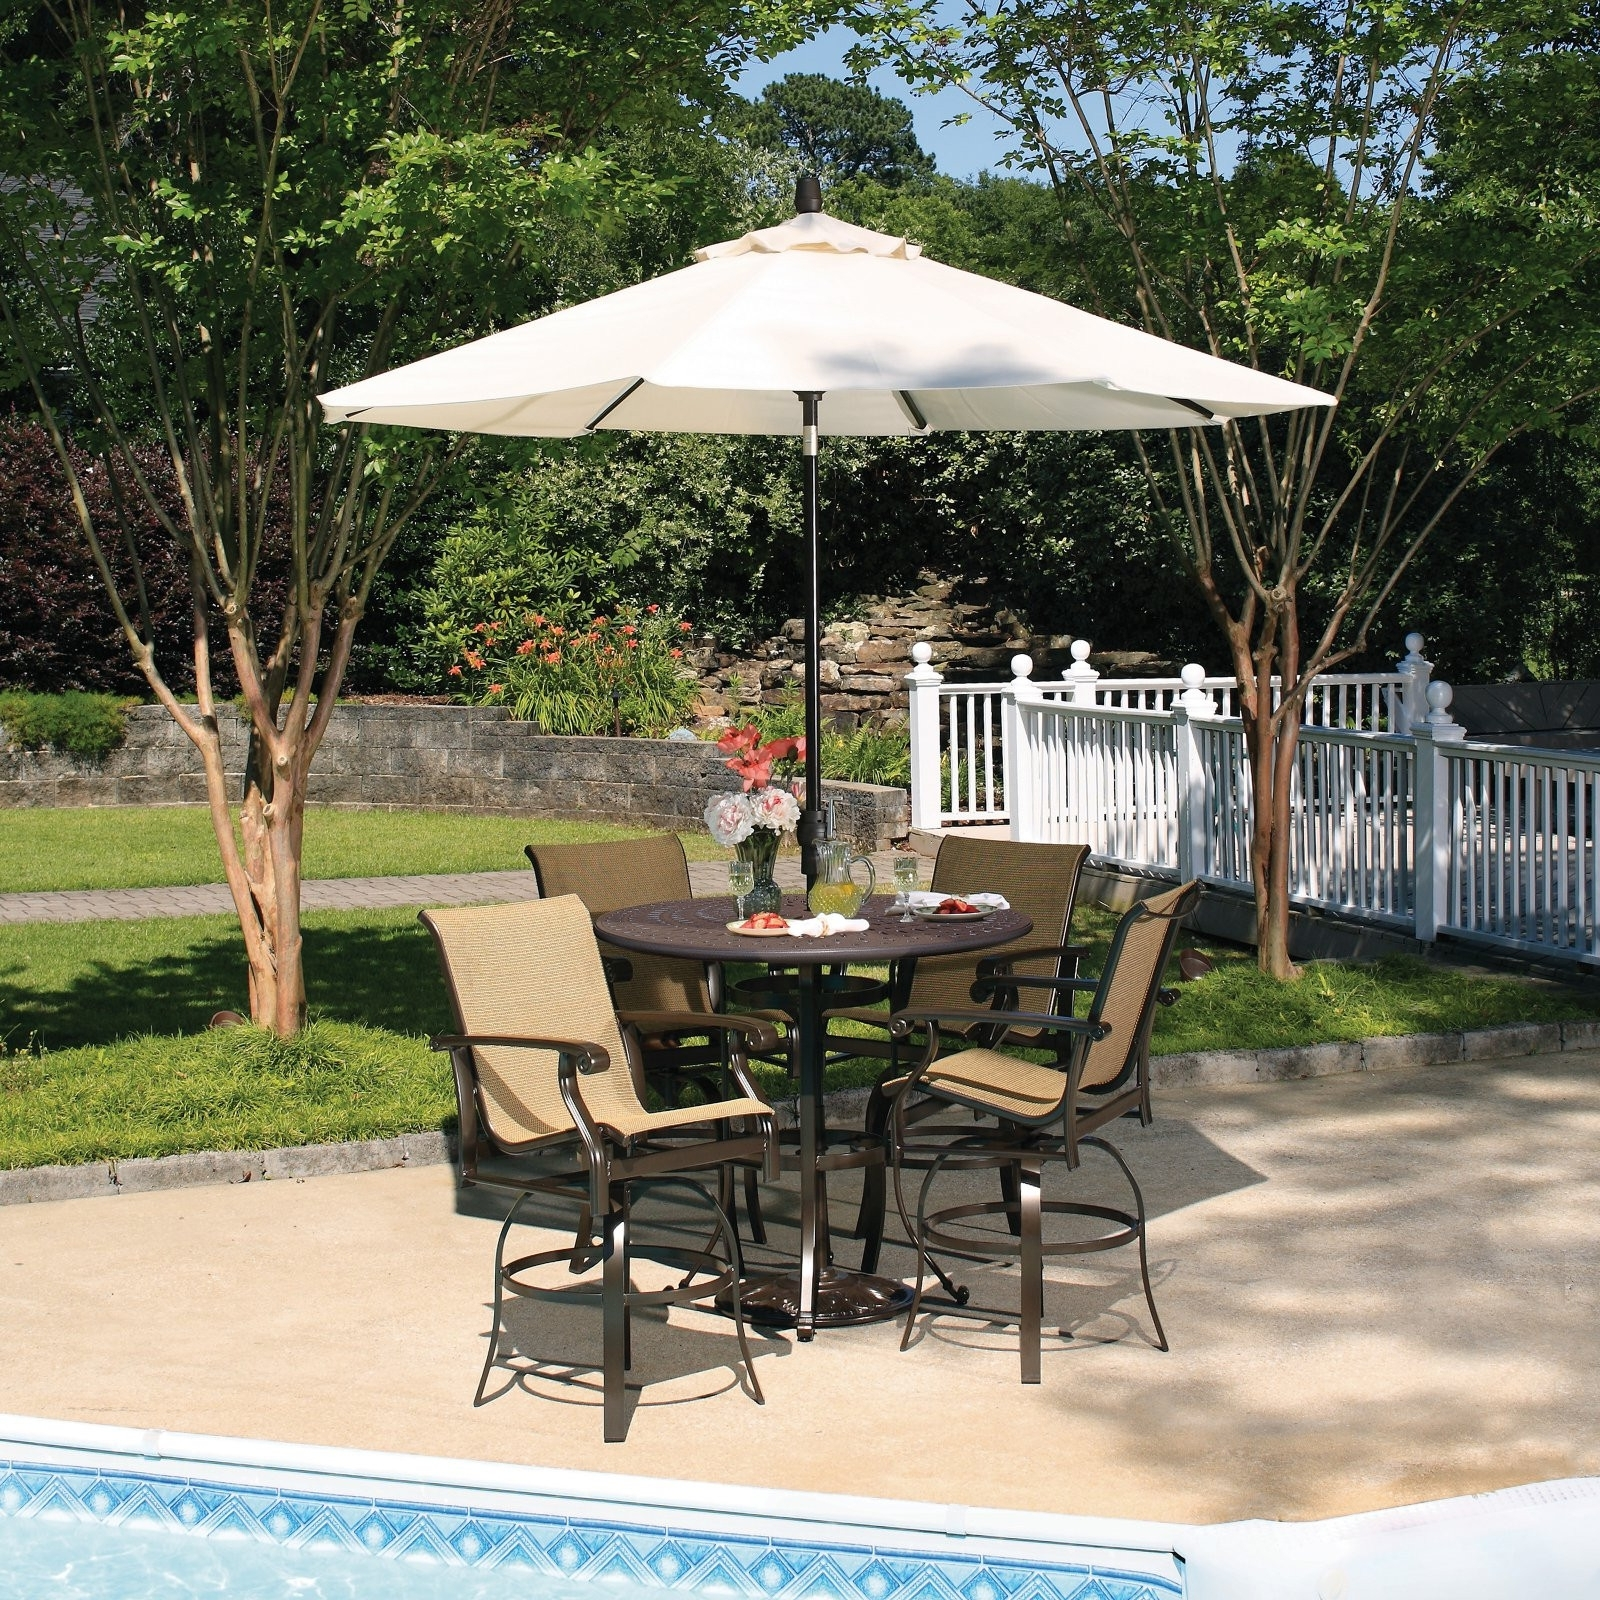 Widely Used Patio Umbrellas Costco Fresh Outdoor Furniture Covers Costco From 14 For Patio Umbrellas From Costco (View 20 of 20)